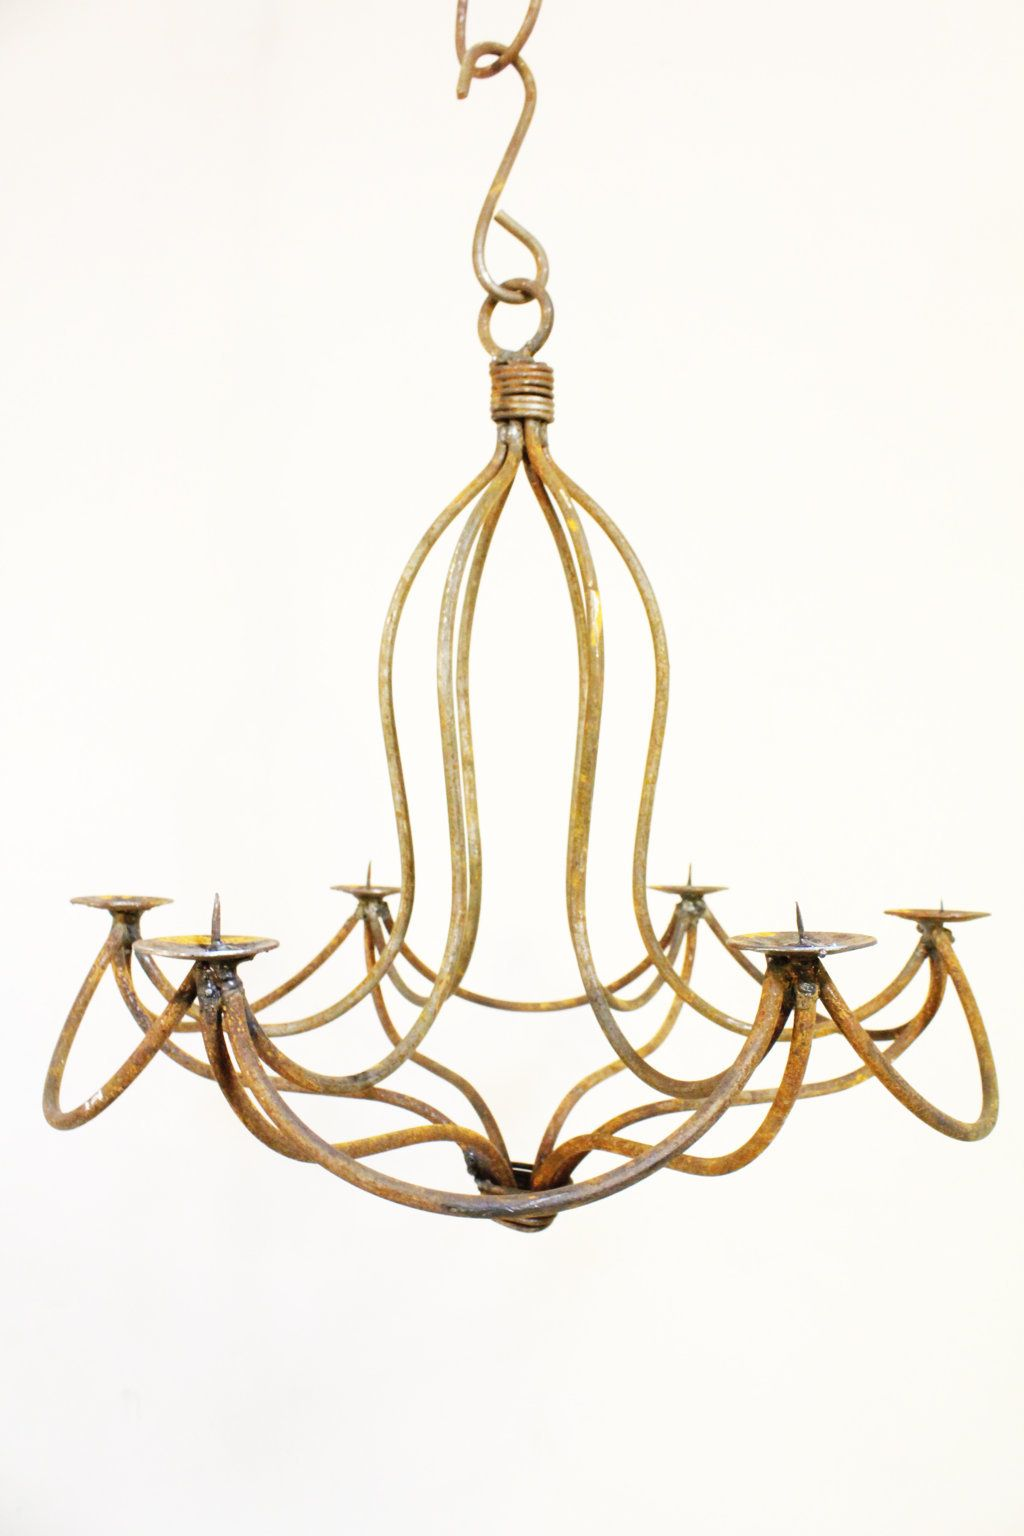 18 Wrought Iron Mini Drape Chandelier Candle Lighting Small